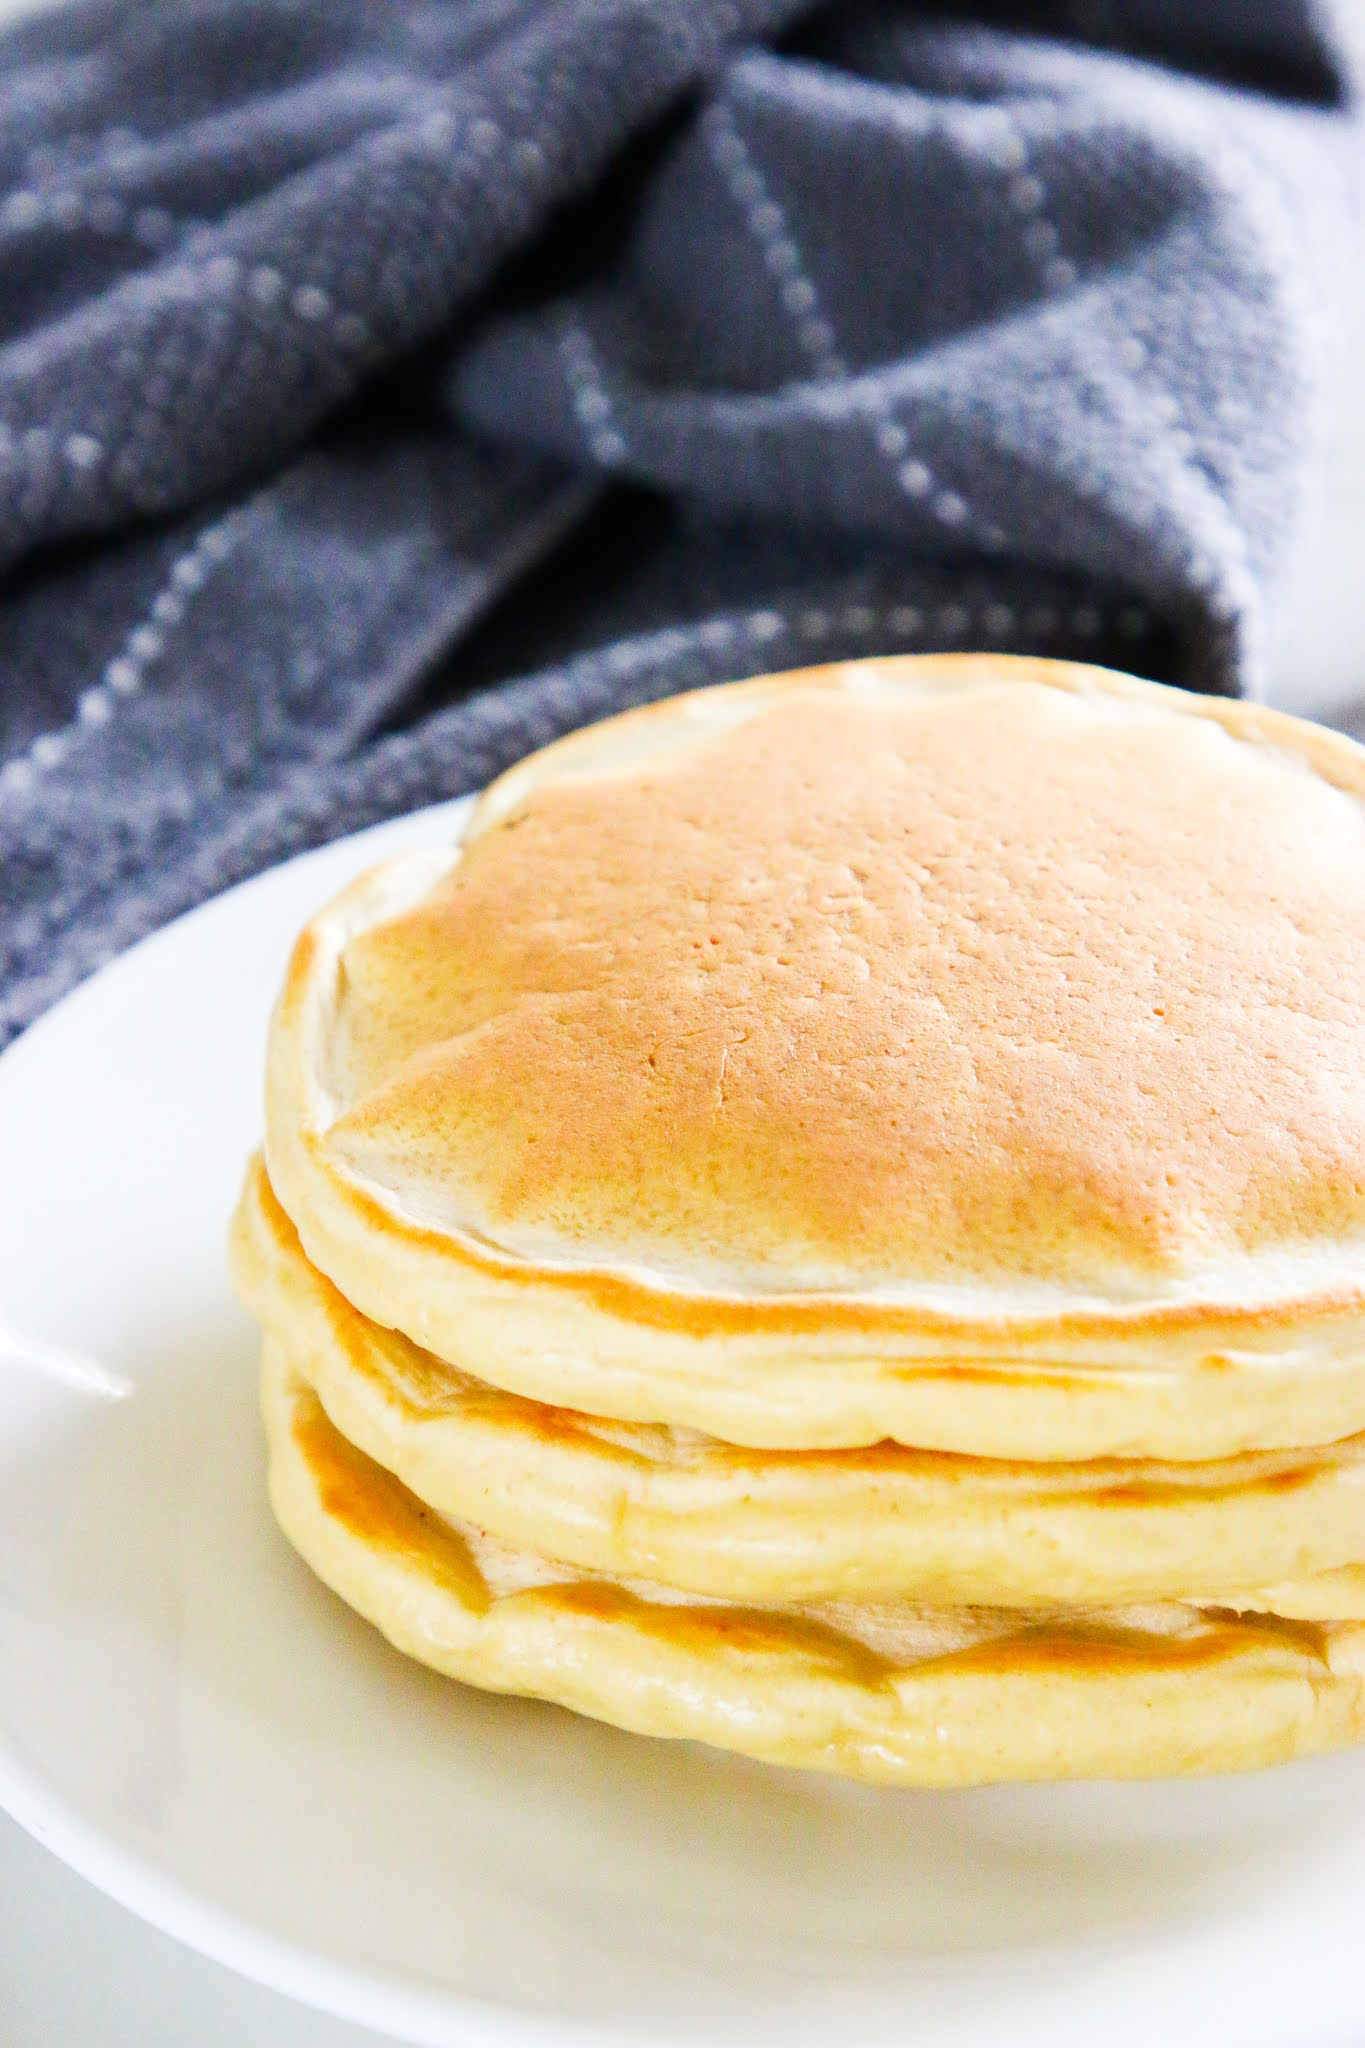 A stack of three pancakes on a plate with a fork and drizzle of syrup